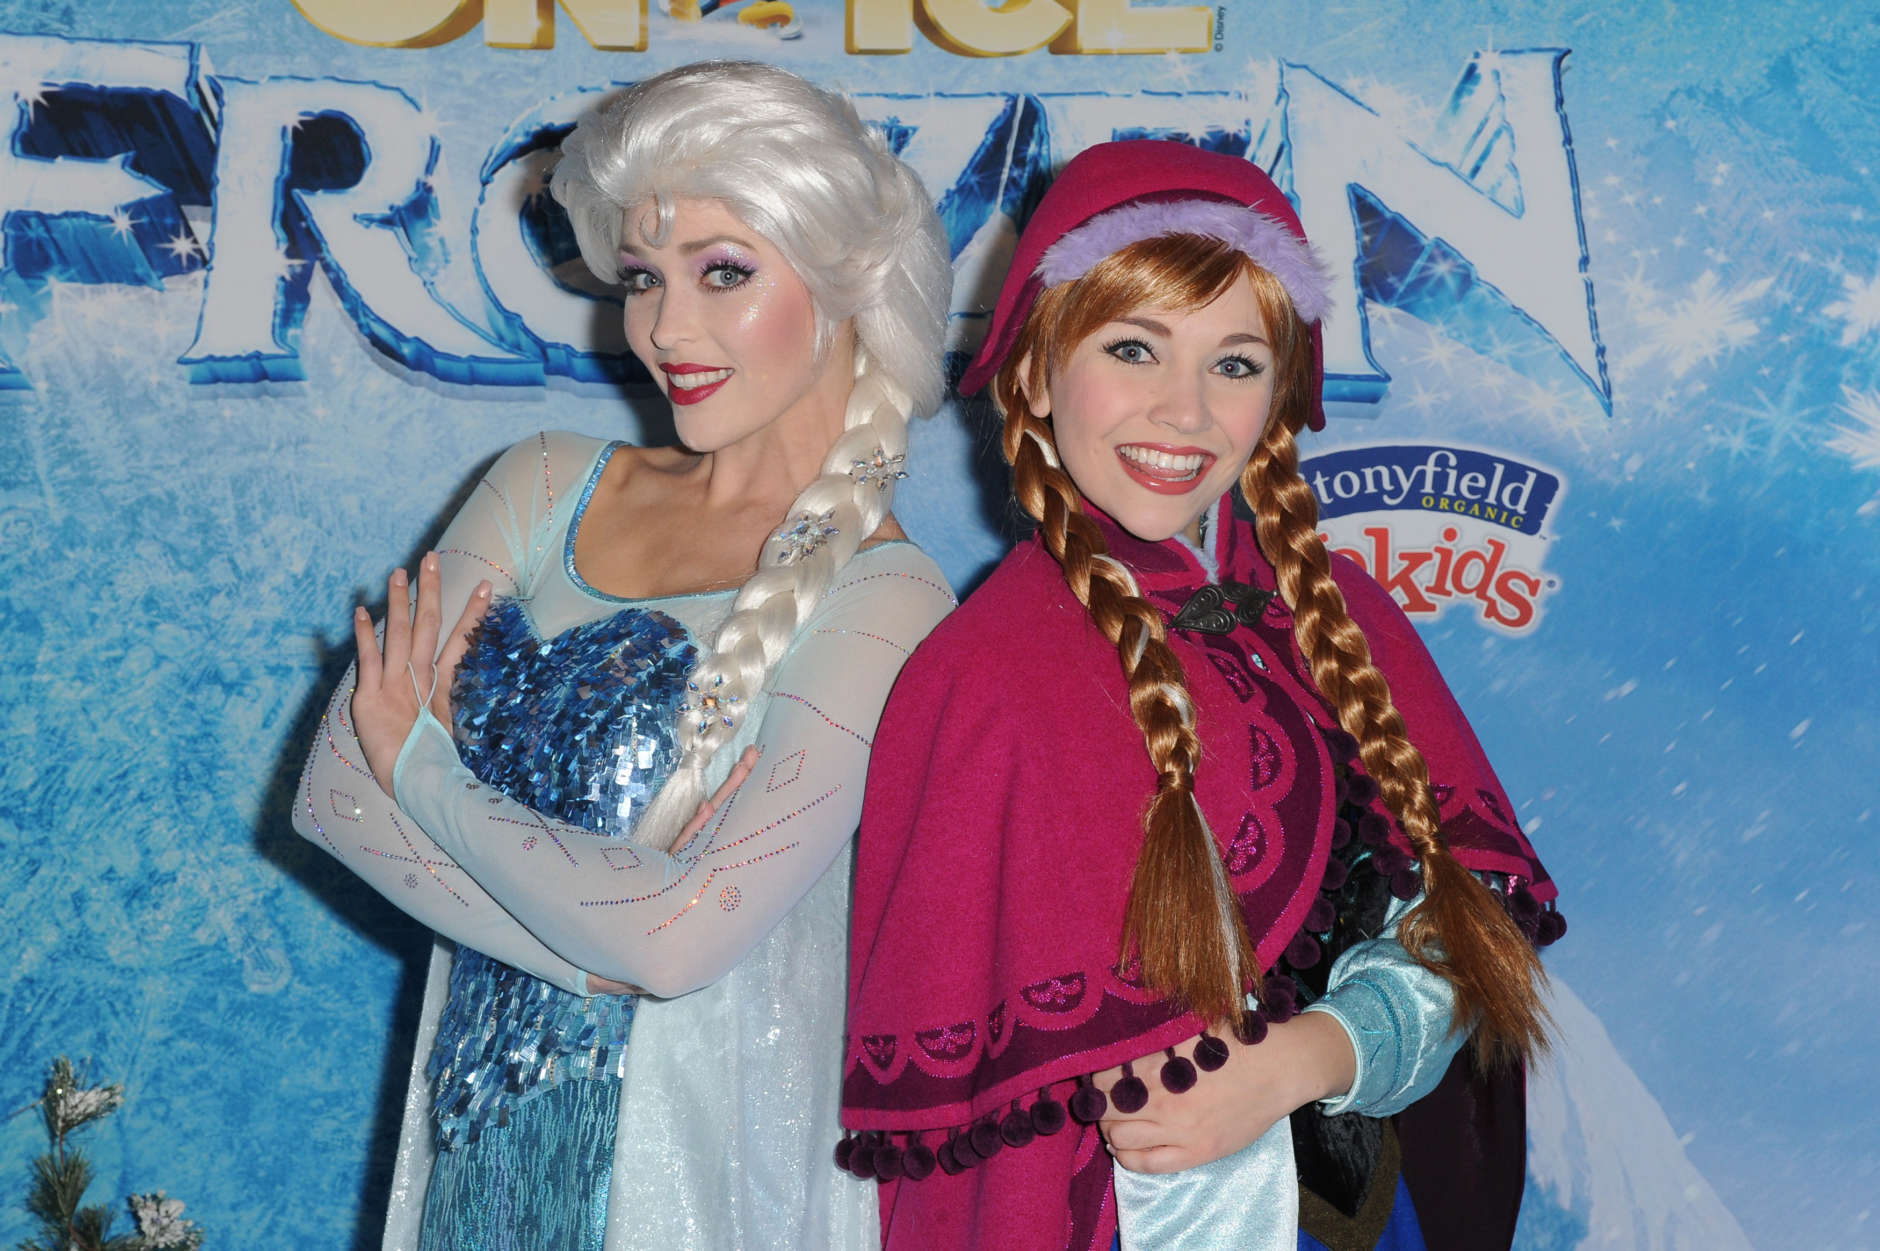 Elsa the Snow Queen, left, and Princess Anna attend Frozen celebrity premiere presented by Disney On Ice held at the Staples Center on Thursday, Dec.10, 2015, in Los Angeles. (Photo by Richard Shotwell/Invision/A P)